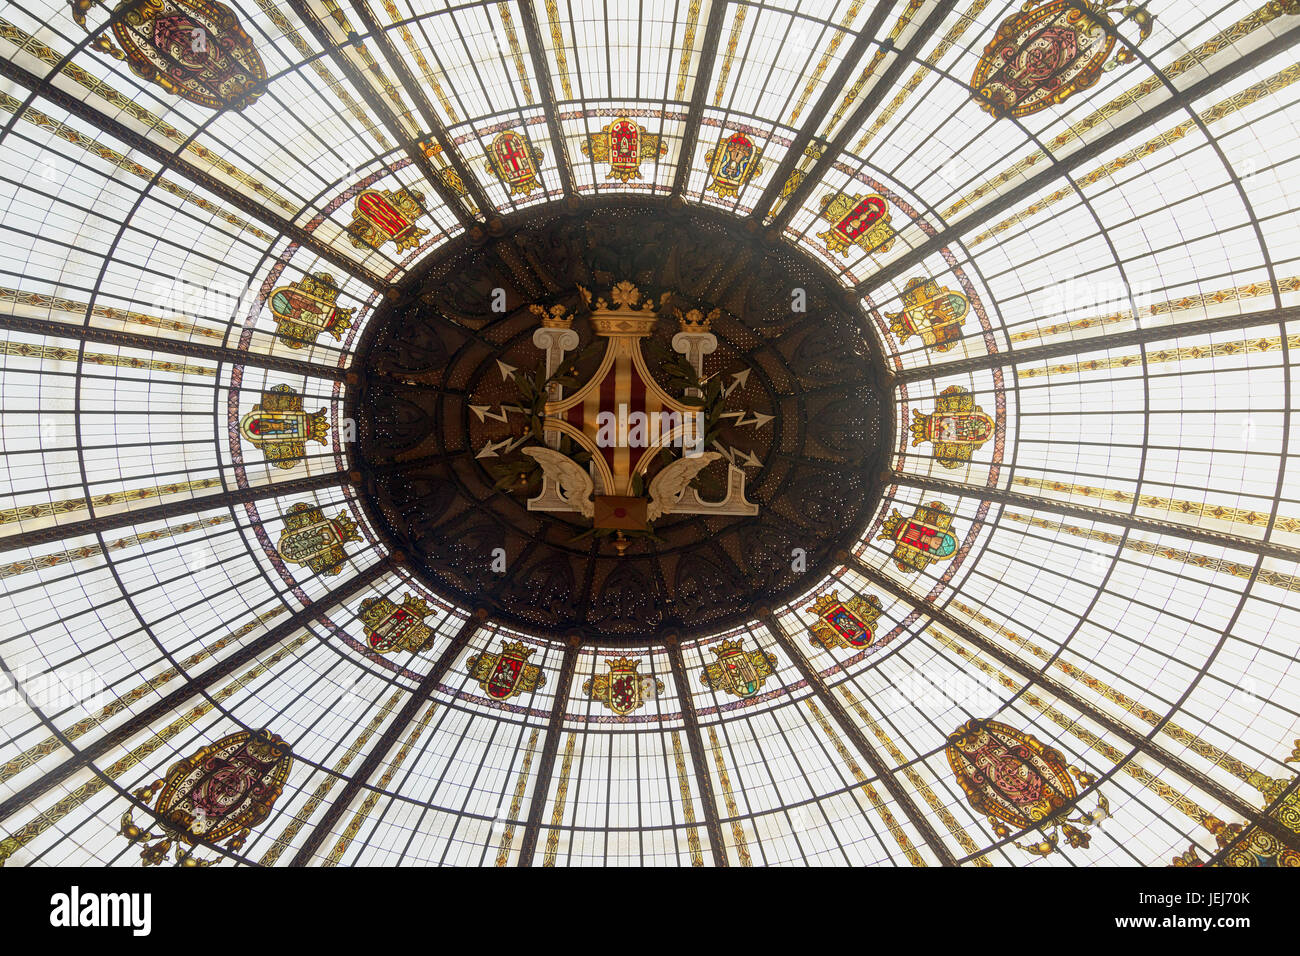 The Ornate Glass Dome Roof in the Correos building in Valencia - Stock Image